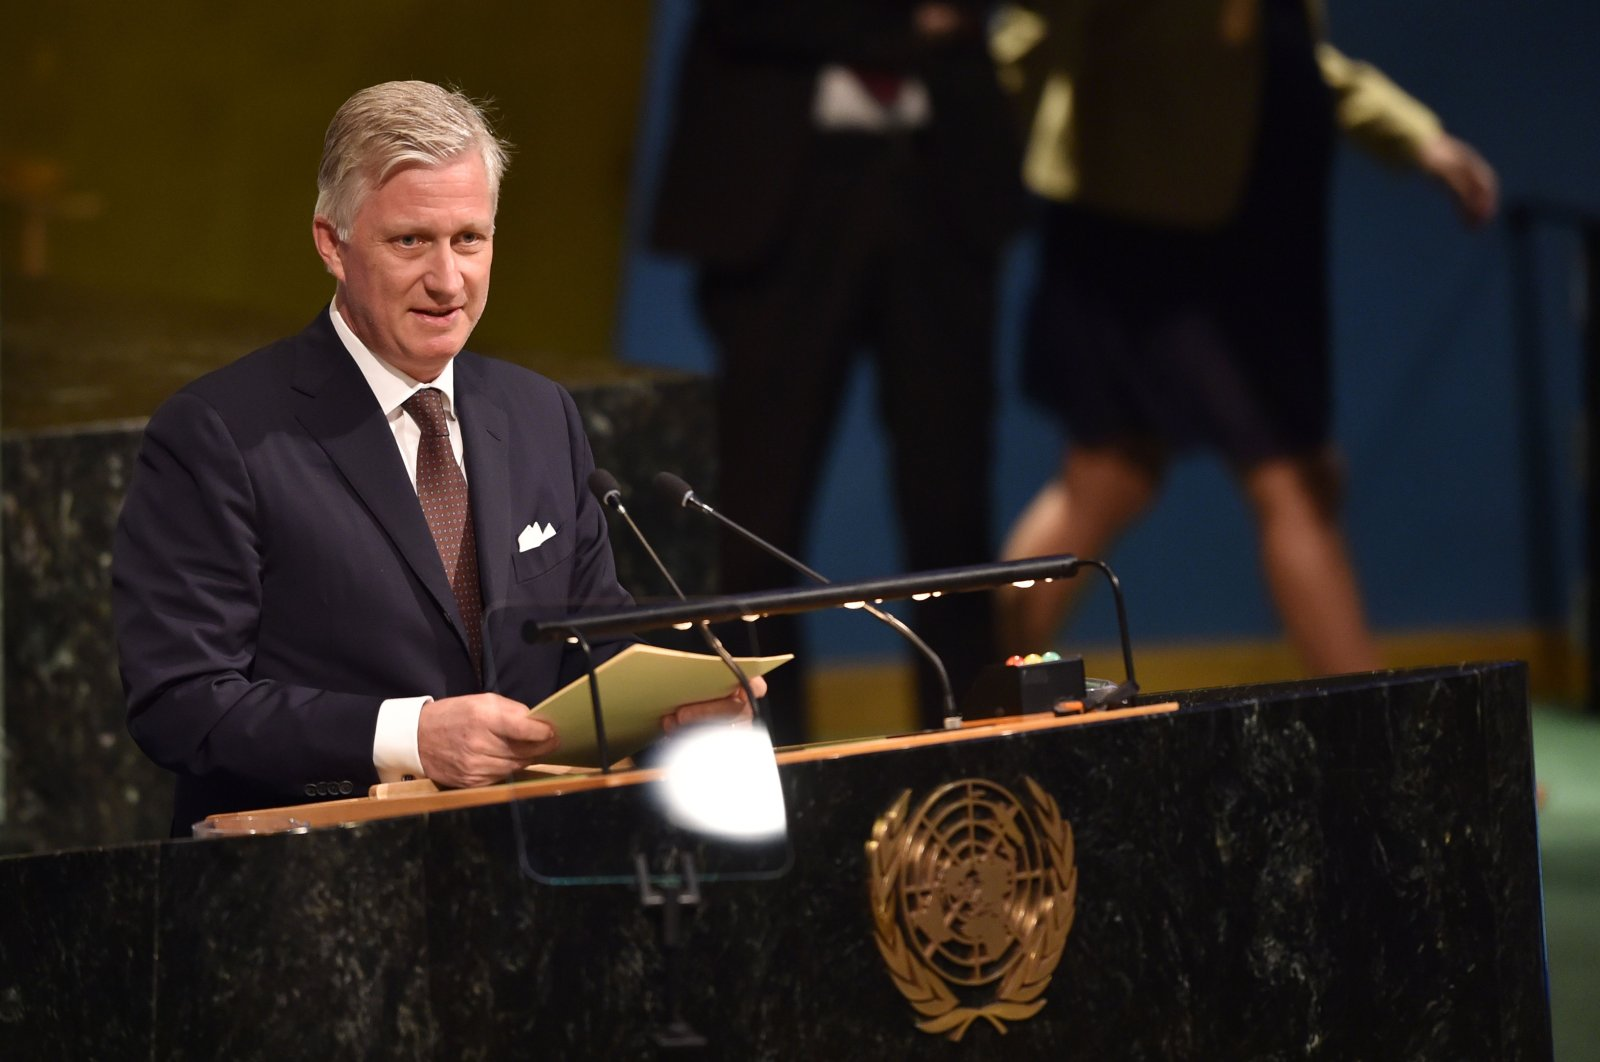 King Philippe of Belgium speaks during the opening session of the 72nd High-Level Meeting on Peacebuilding and Sustaining Peace at United Nations Headquarters in New York, April 24, 2018. (AFP Photo)